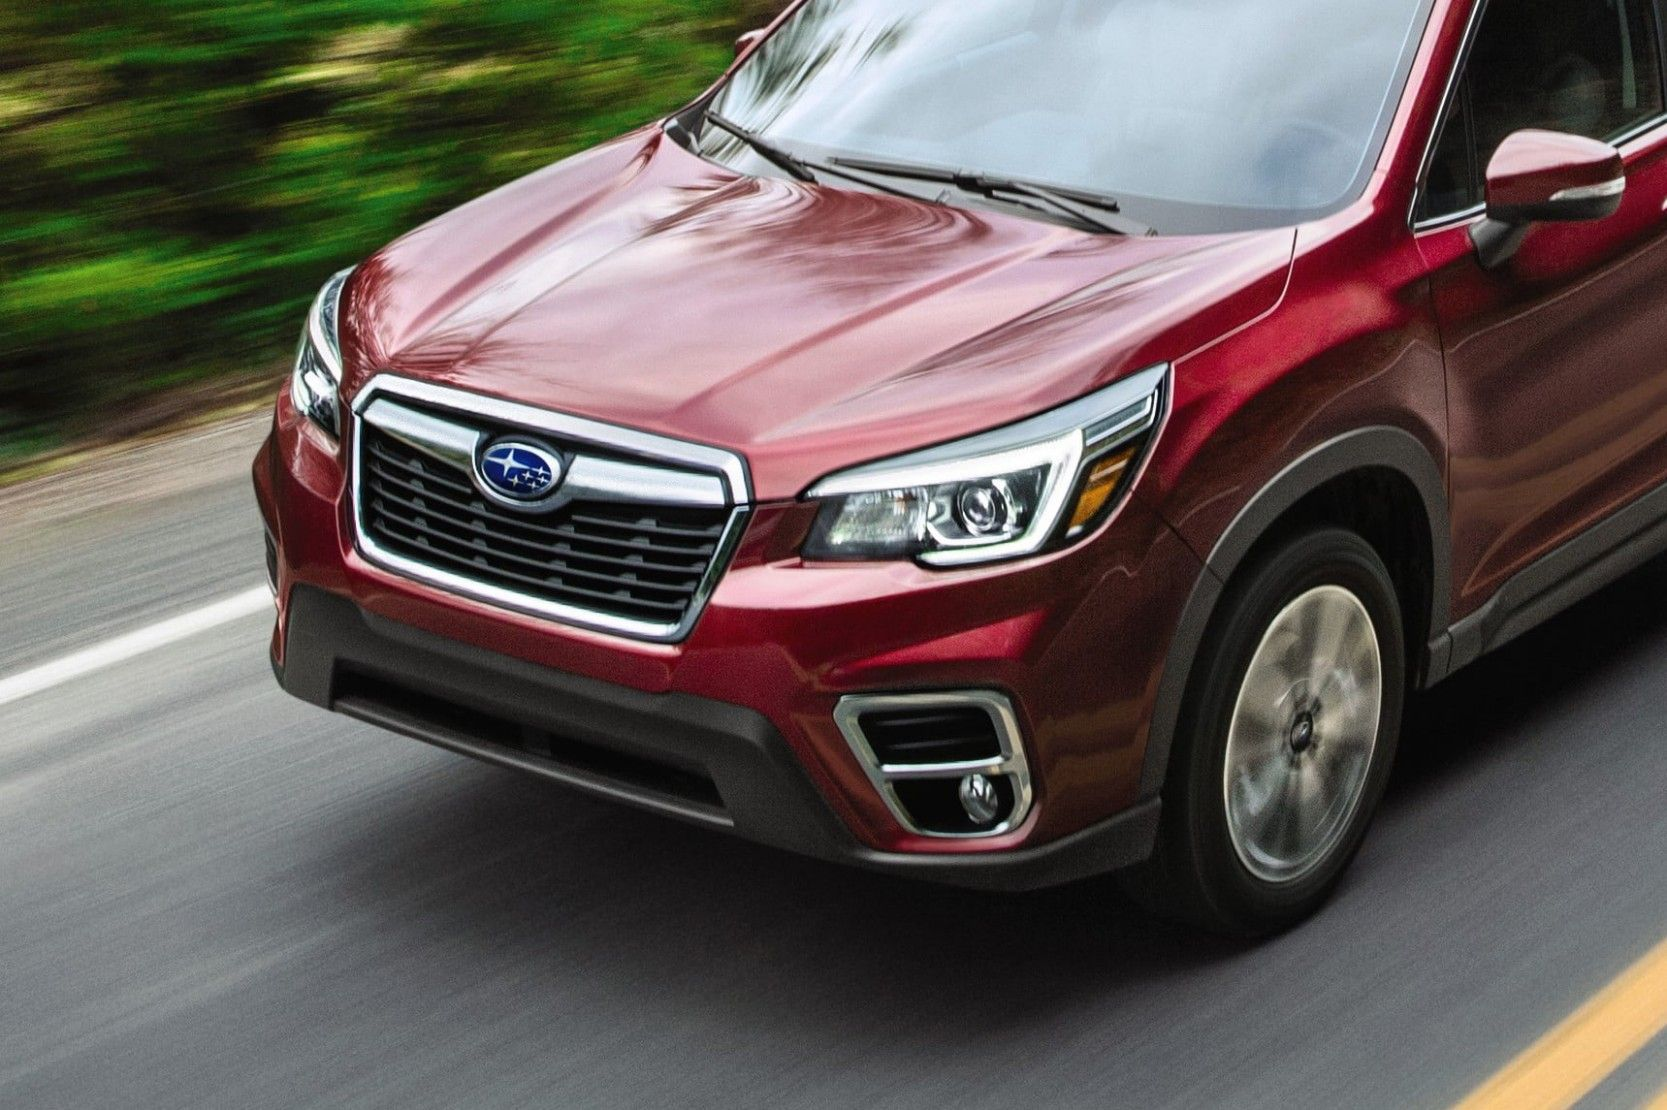 7 Unexpected Ways 2020 Subaru Forester Design Can Make Your